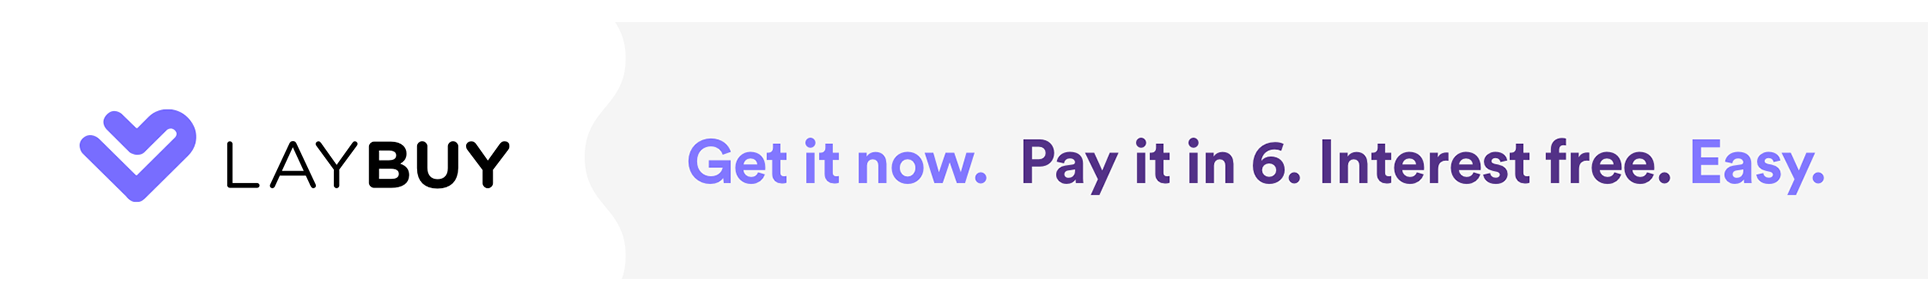 Laybuy: Get it now. Pay it in 6. Interest free. Easy.